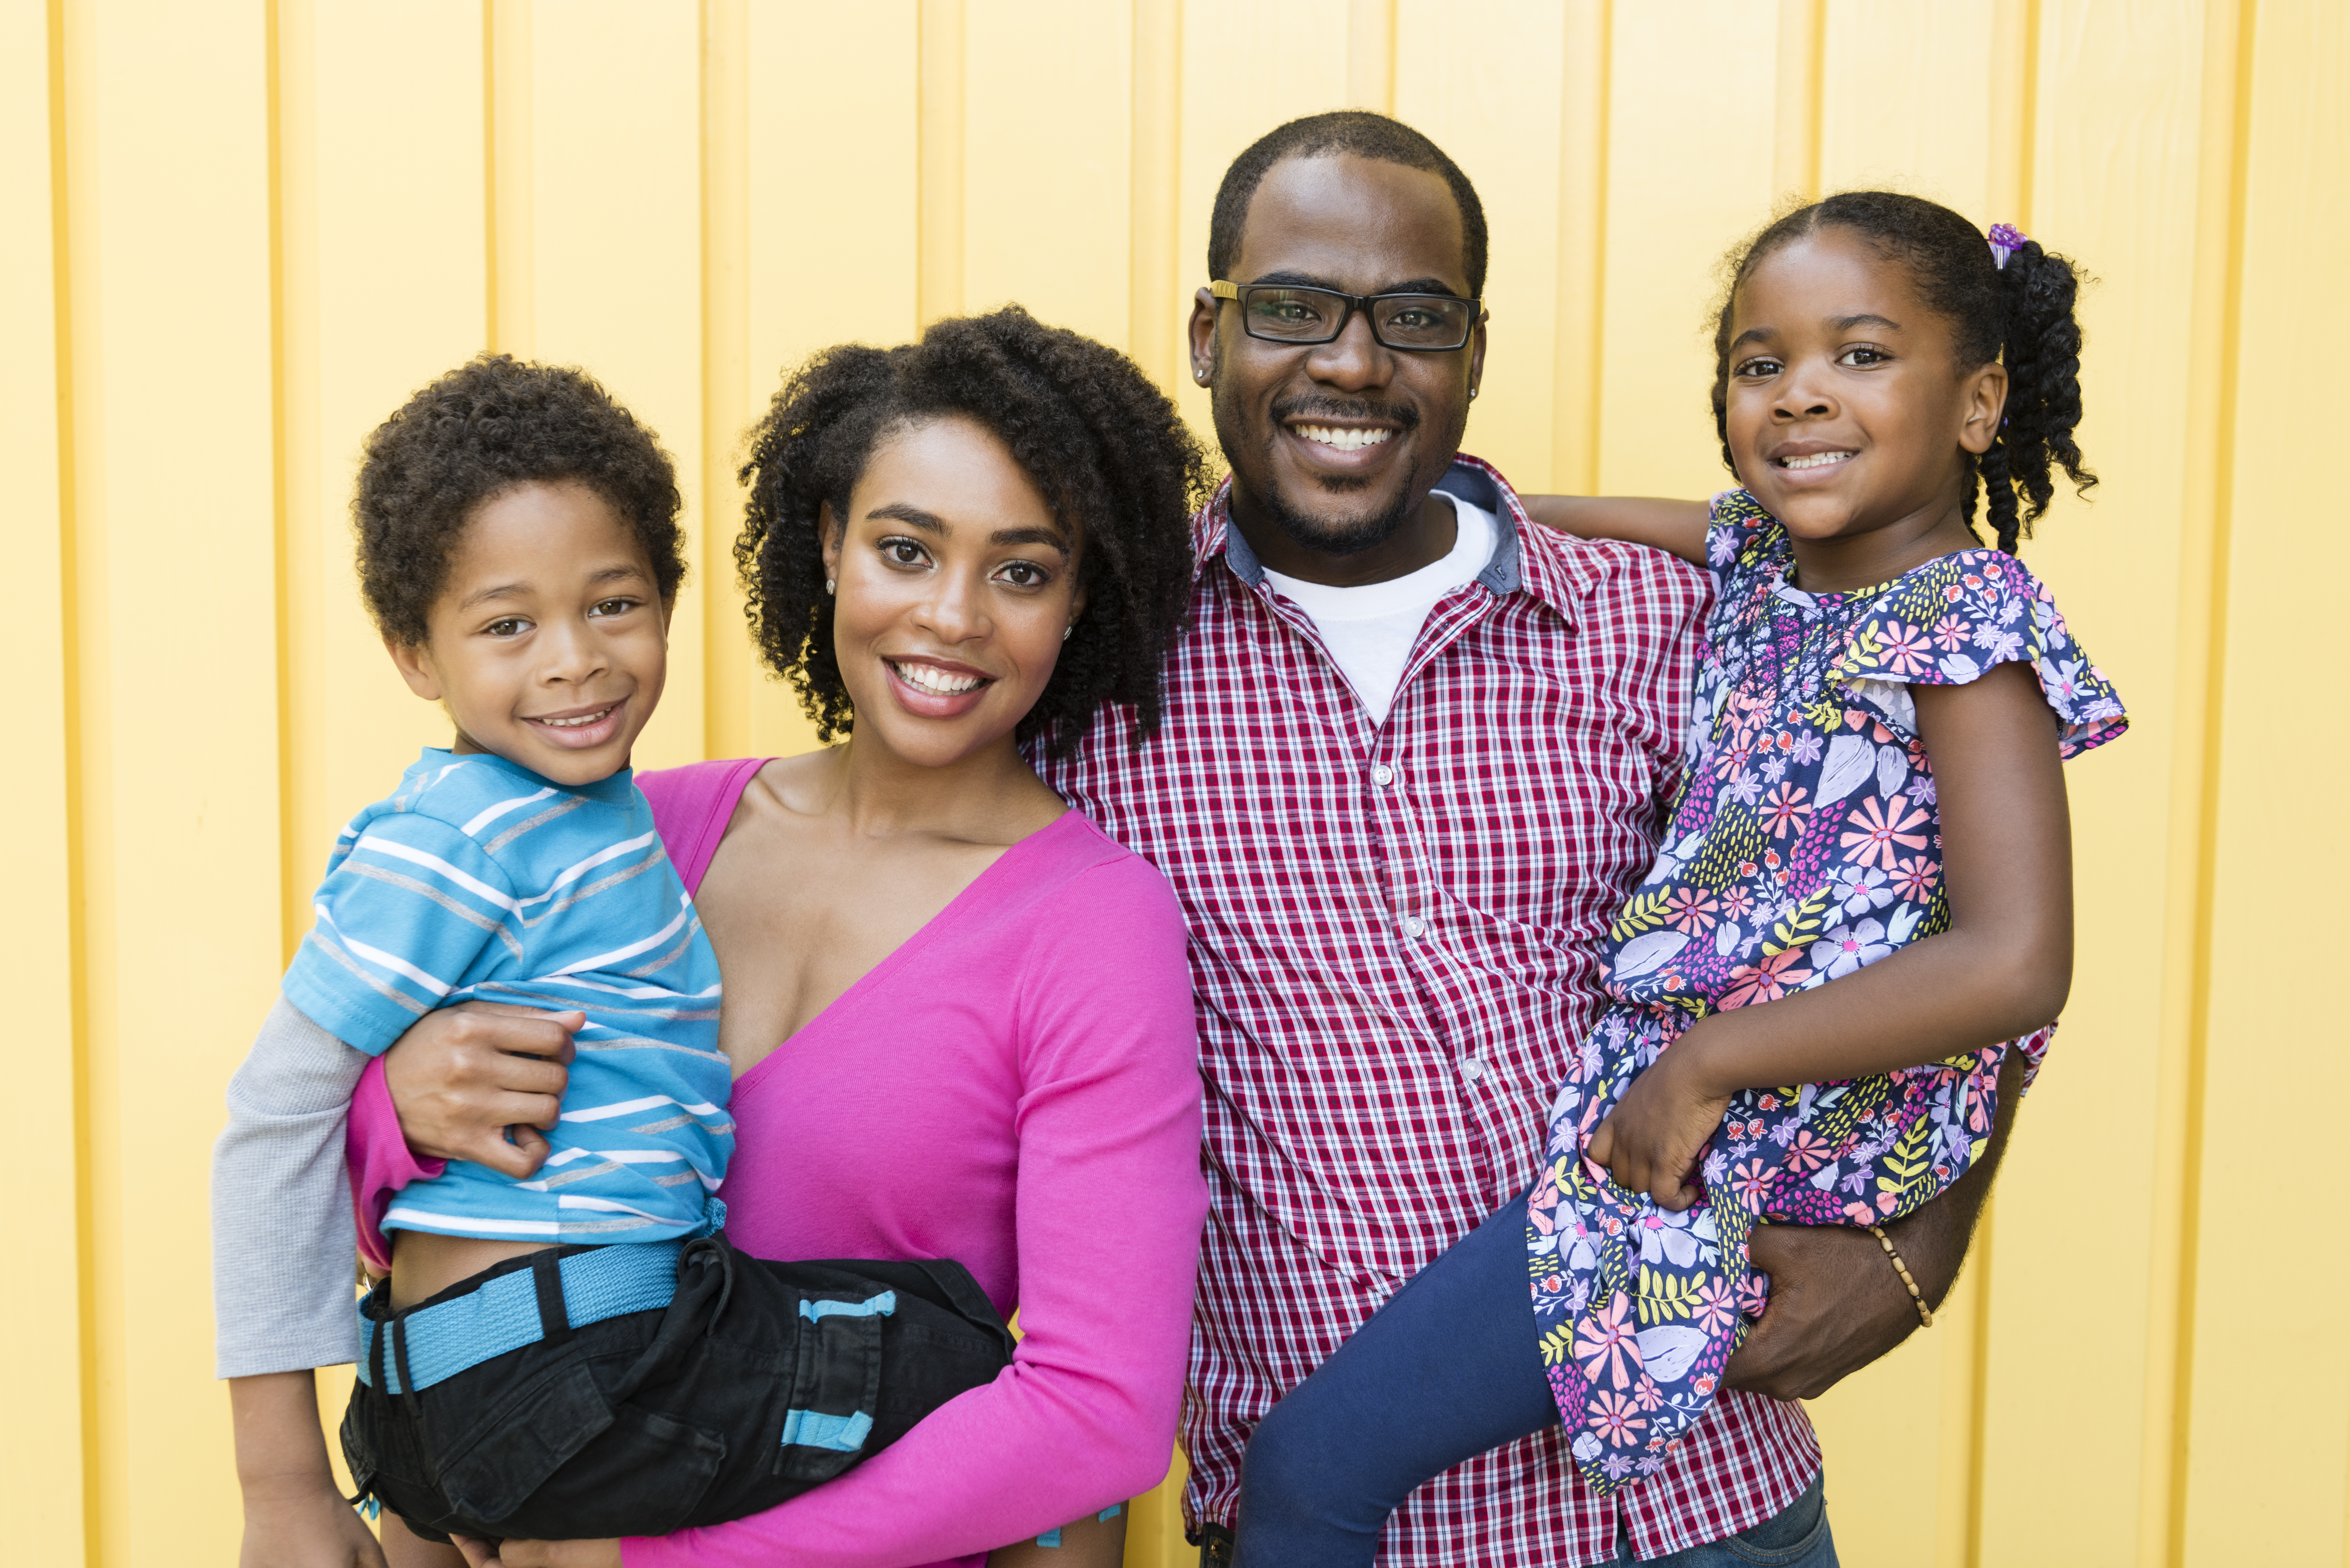 African American family smiling to the camera, portrait